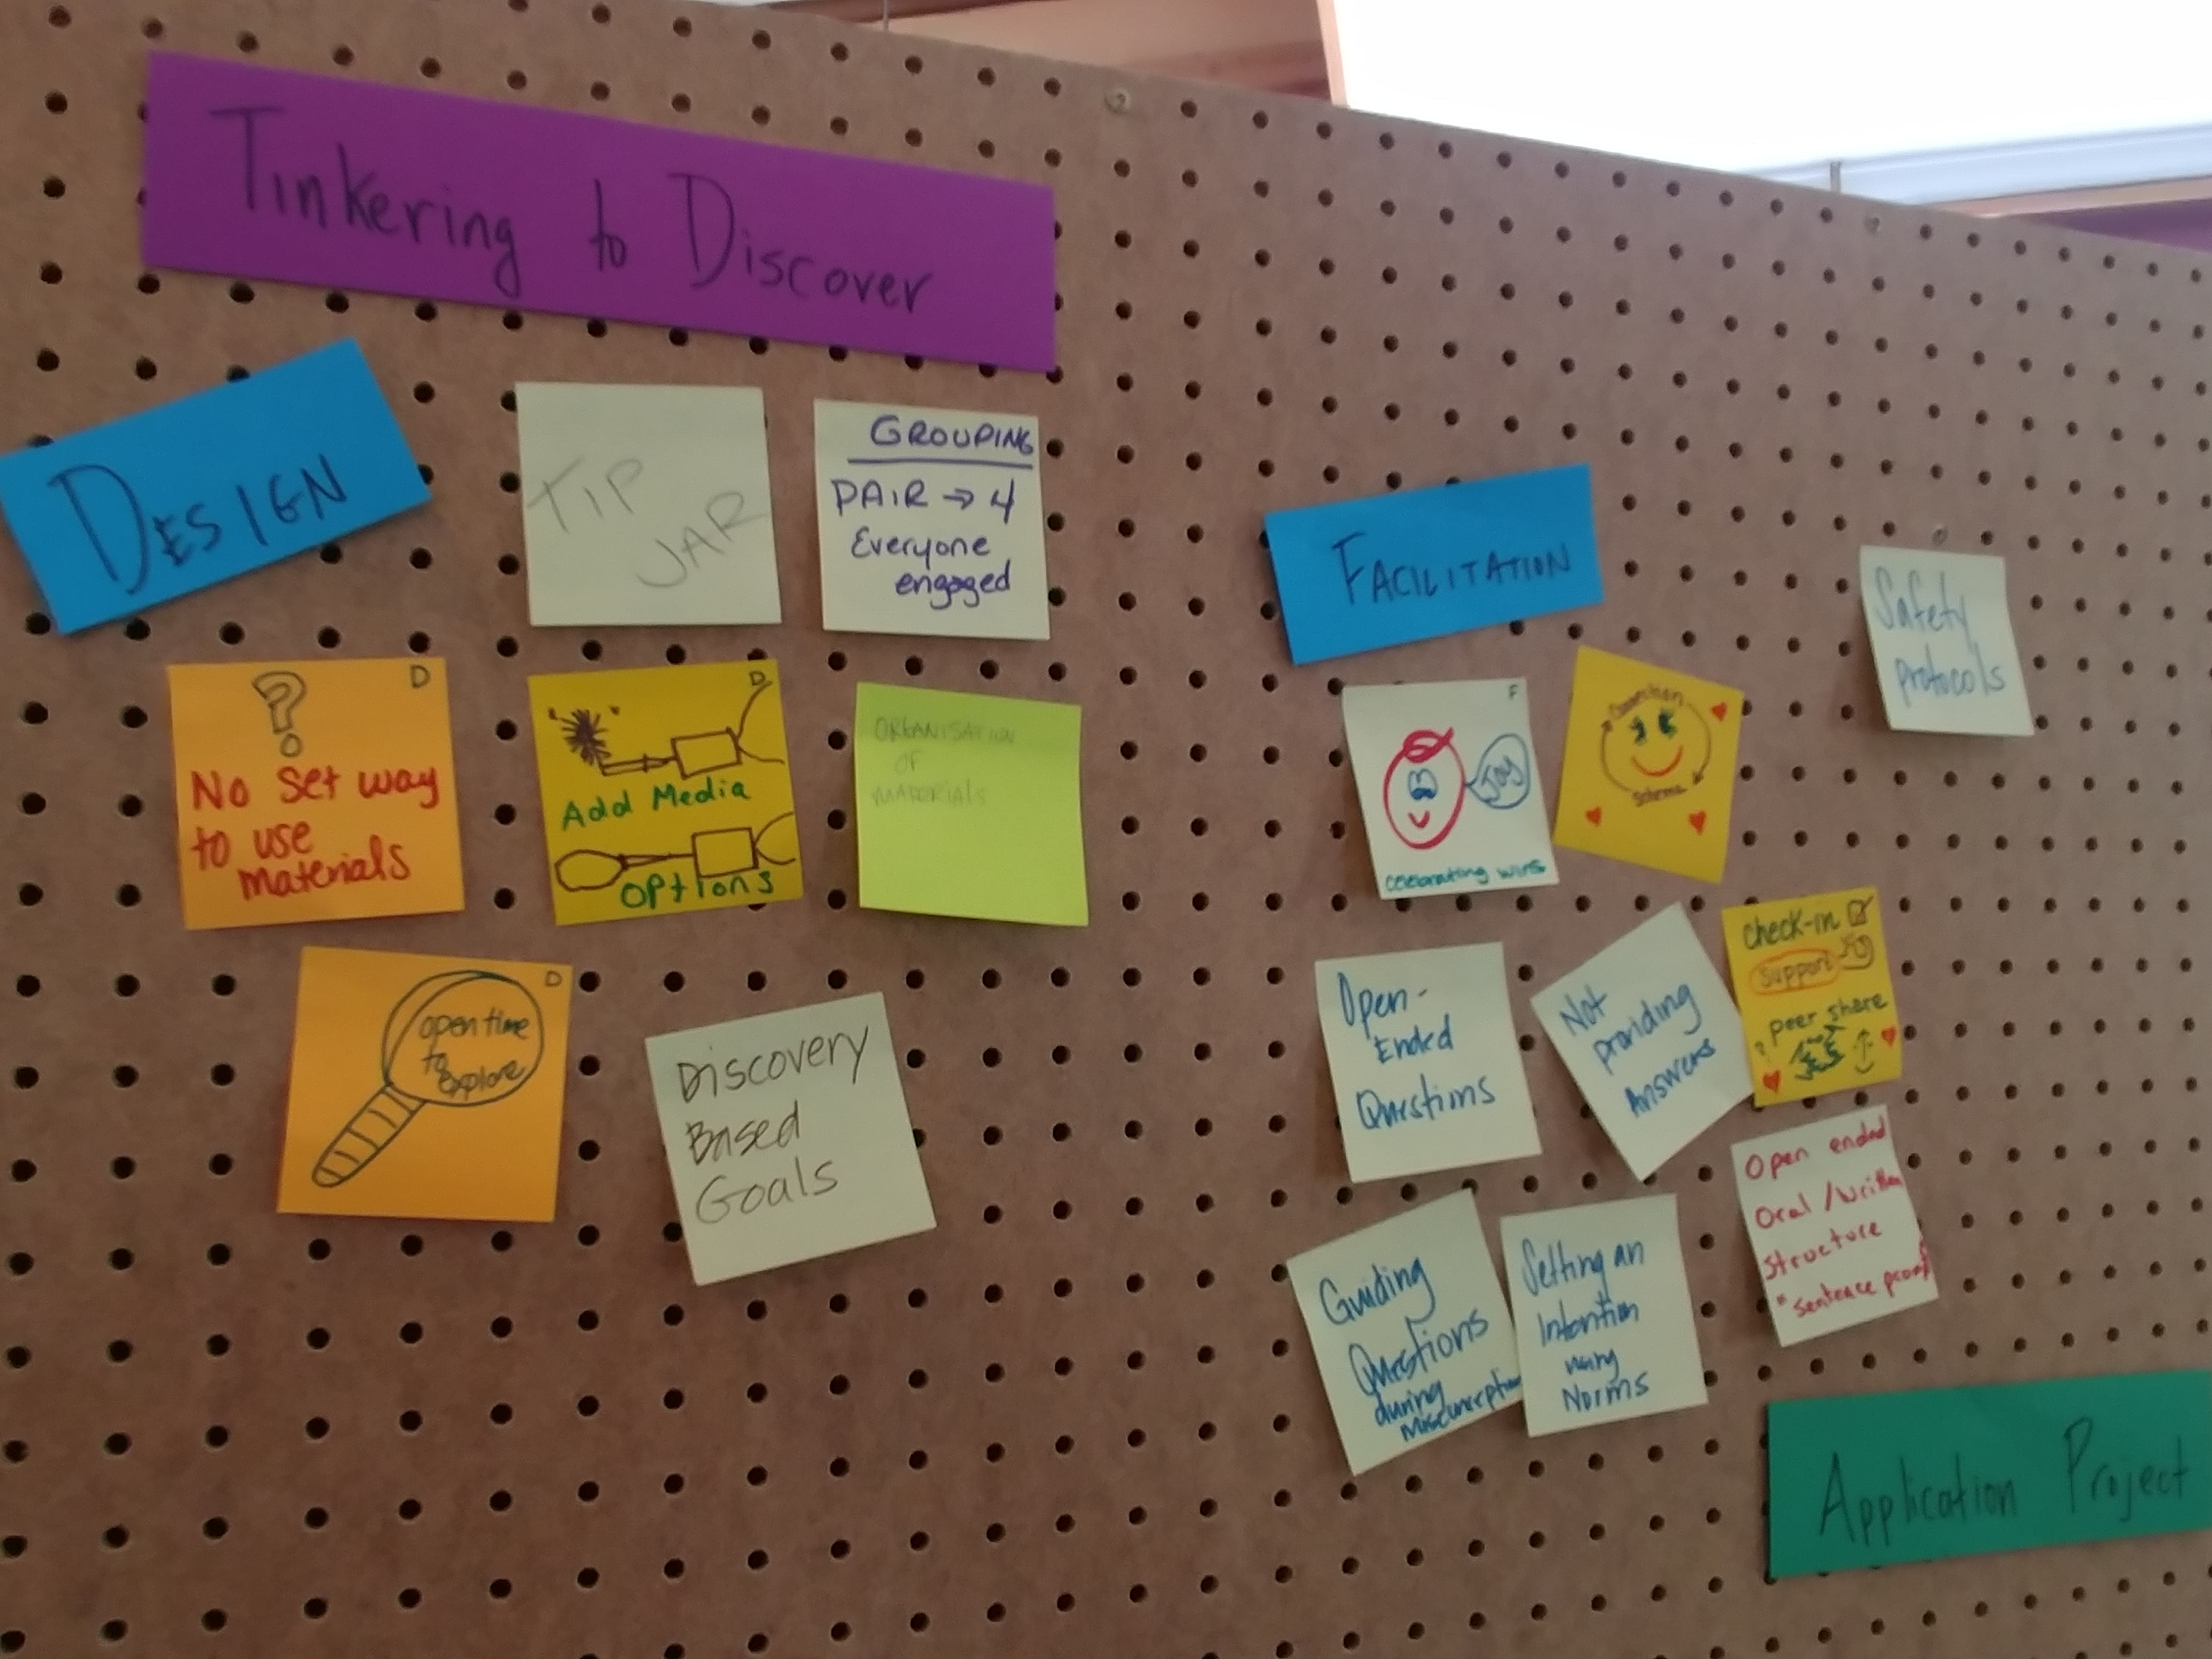 Several post-it notes on a pegboard illustrate participant observations about the Tinkering to Discover activity.